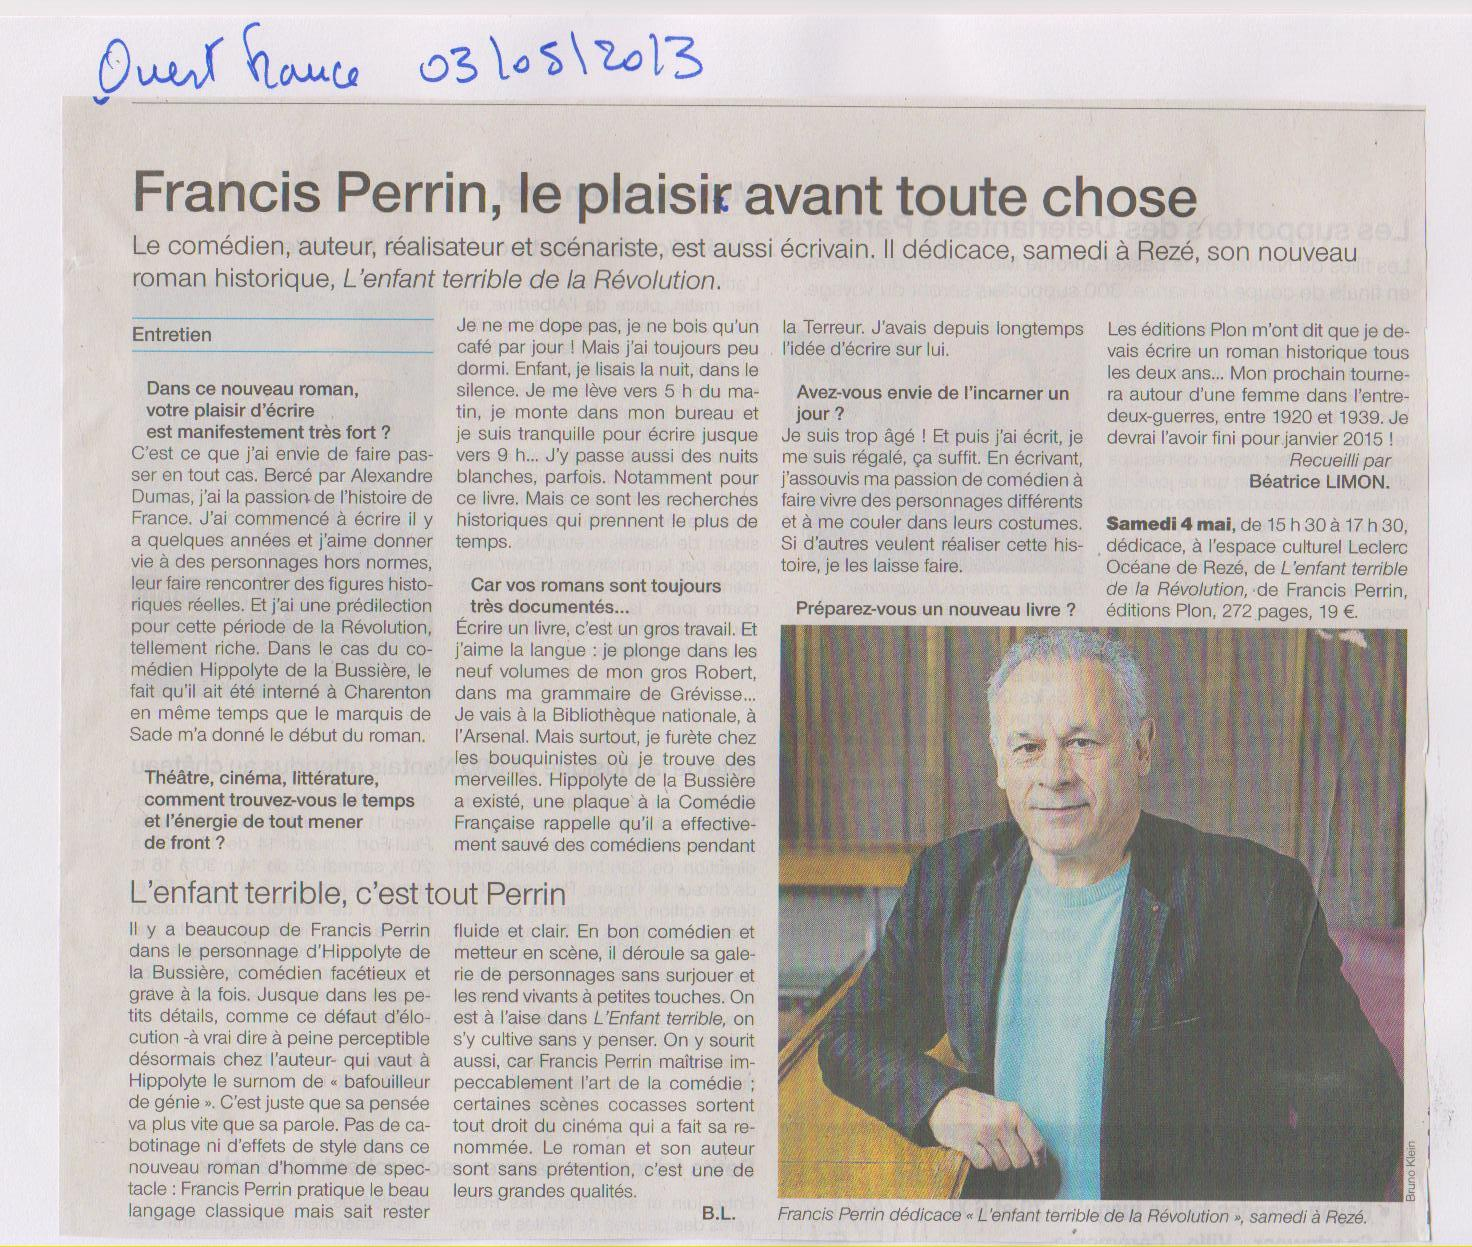 03.05.2013 - FRANCIS PERRIN - OUEST FRANCE